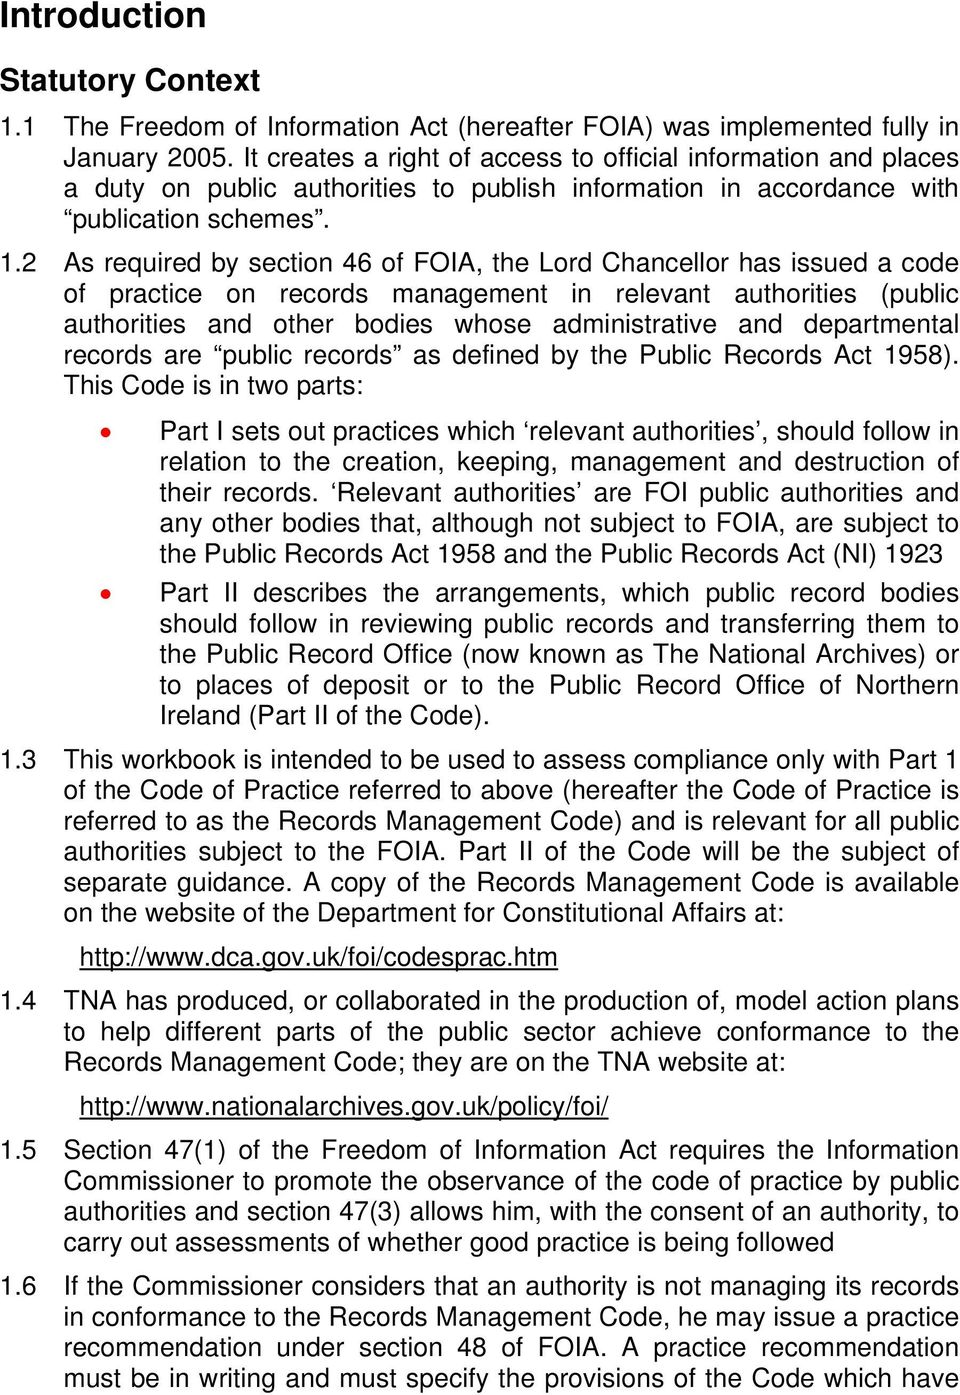 2 As required by section 46 of FOIA, the Lord Chancellor has issued a code of practice on records management in relevant authorities (public authorities and other bodies whose administrative and